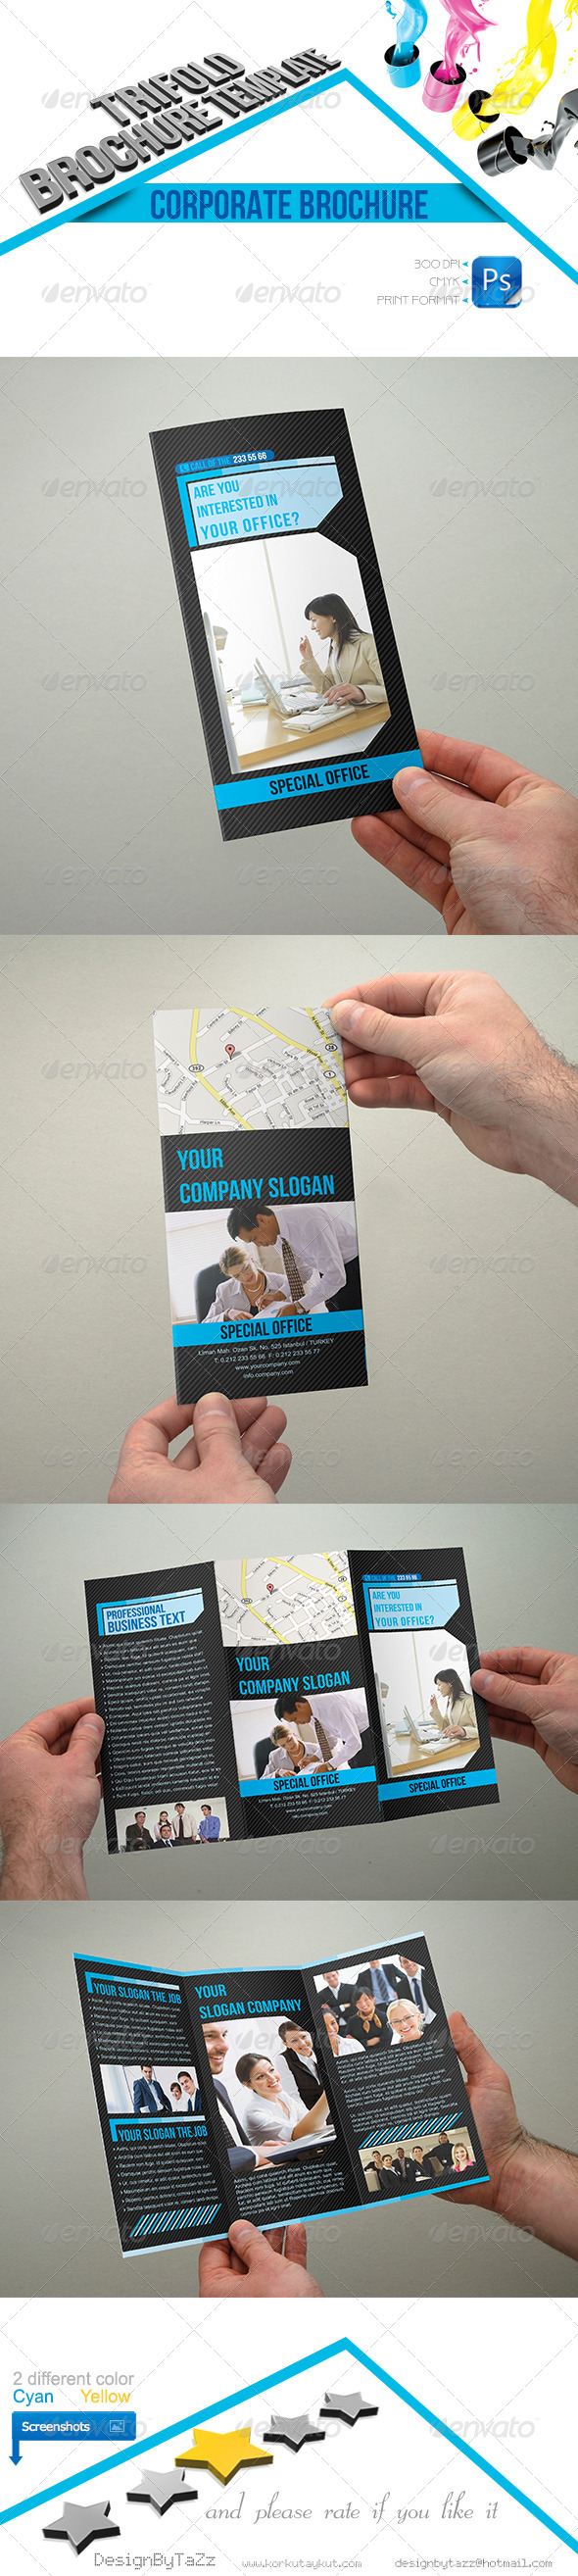 Corporate Business Trifold Template - Corporate Brochures